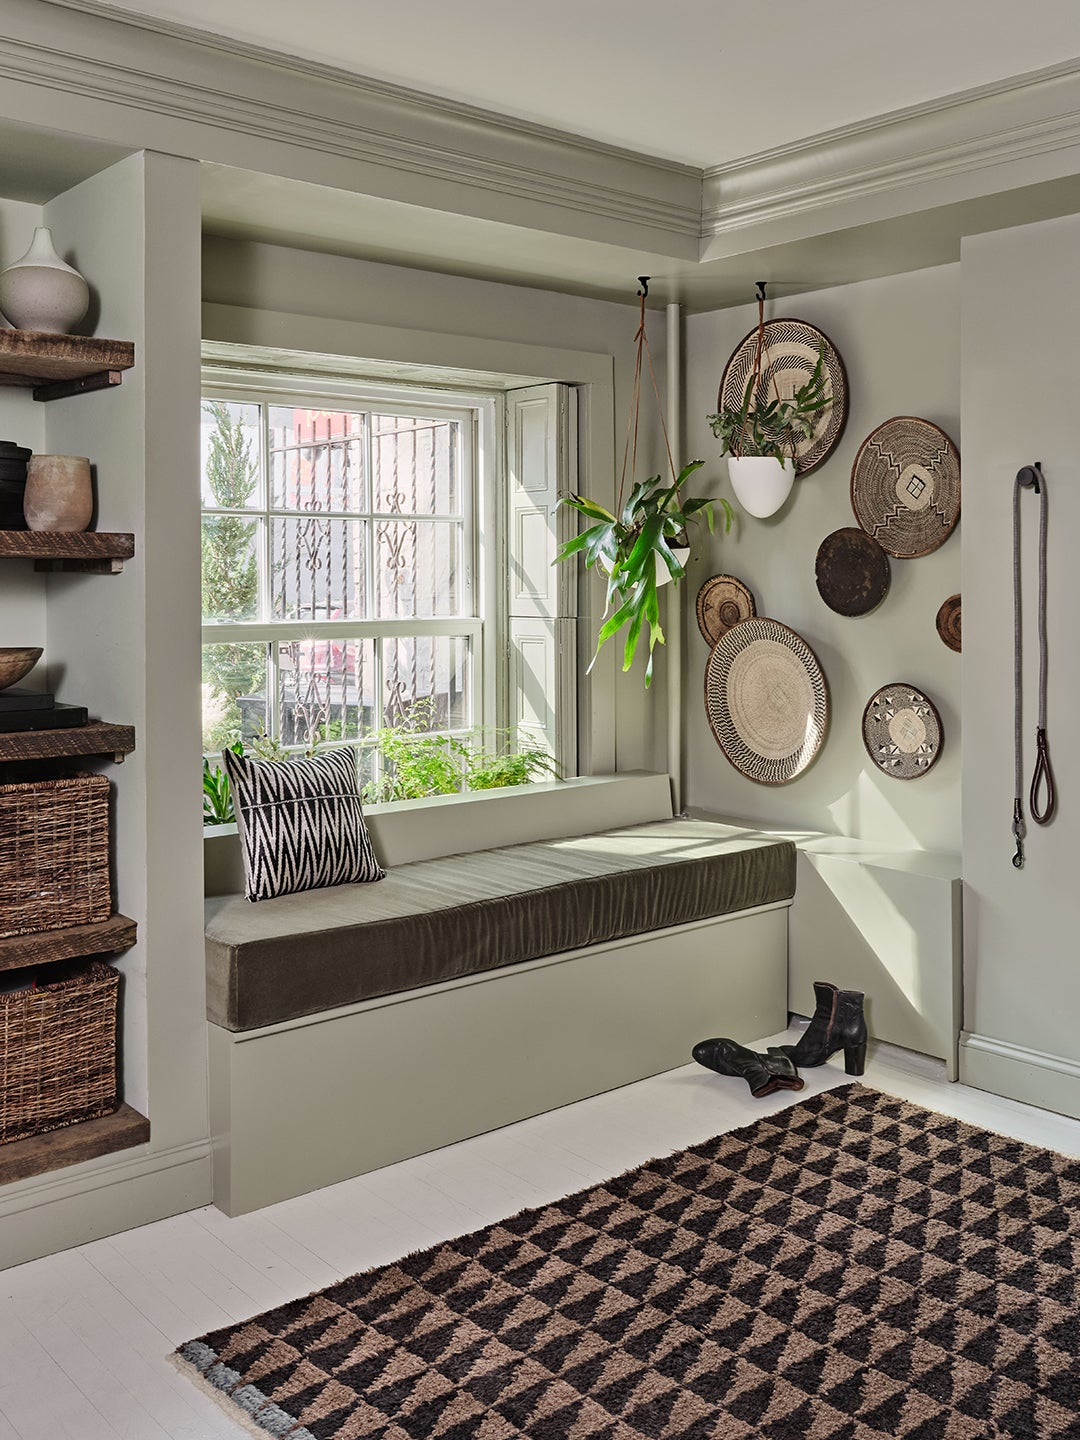 green entryway nook with hanging baskets